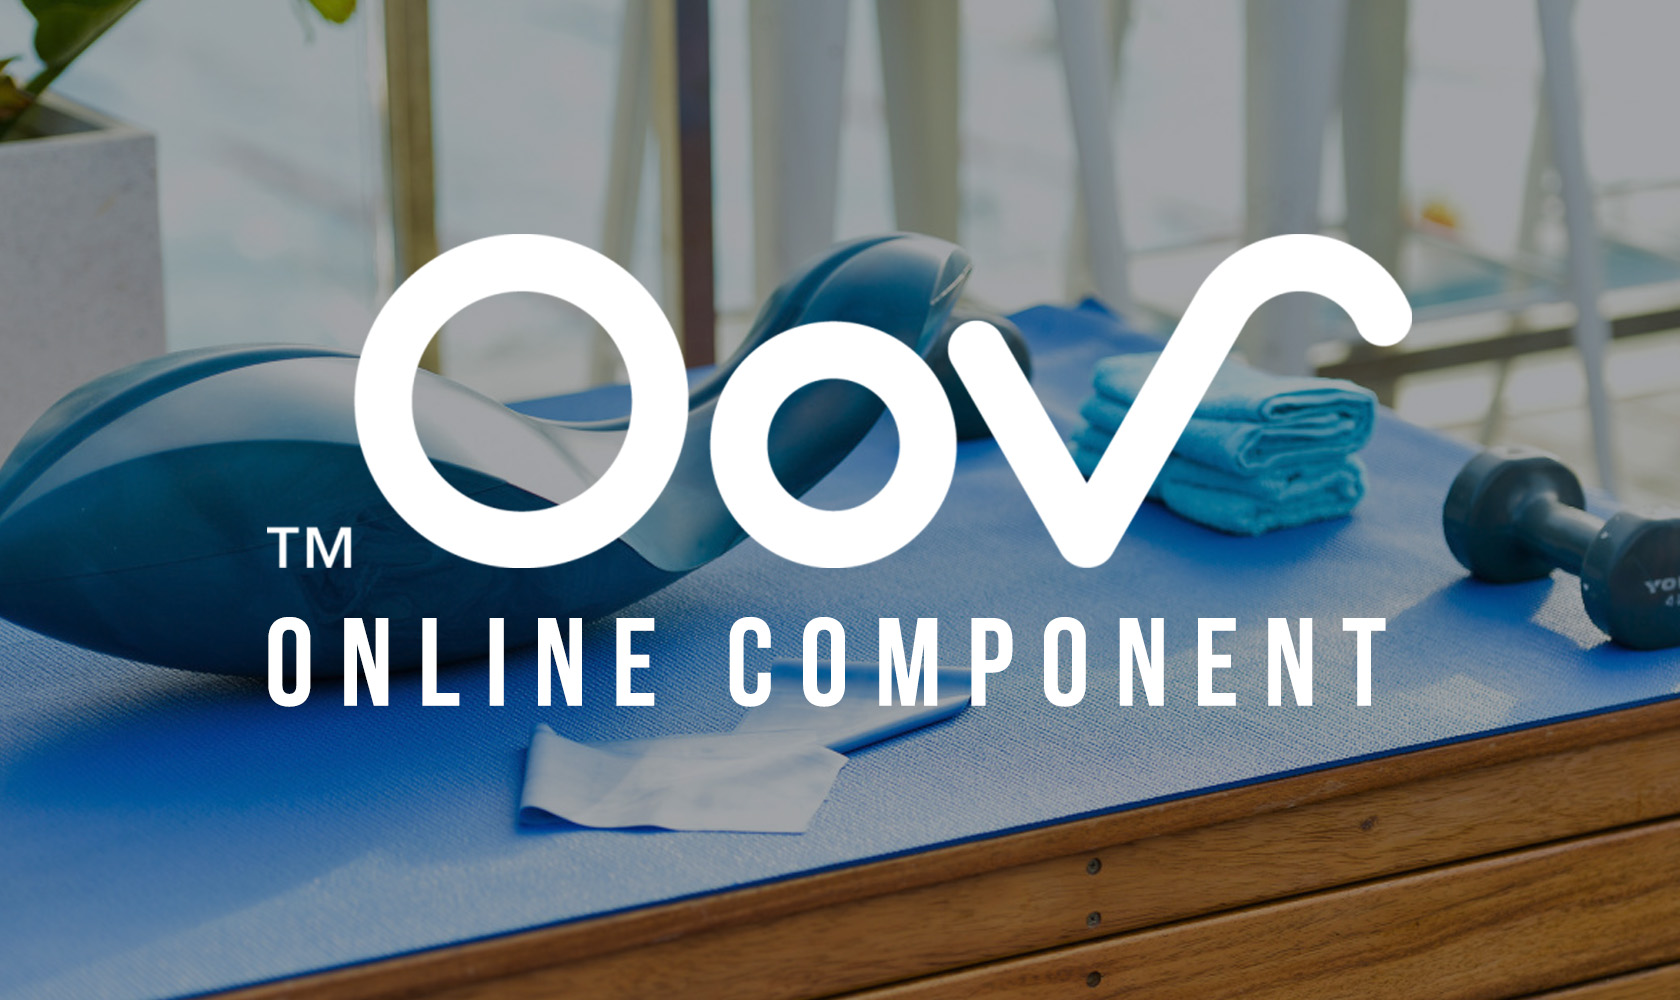 OOV Online Component